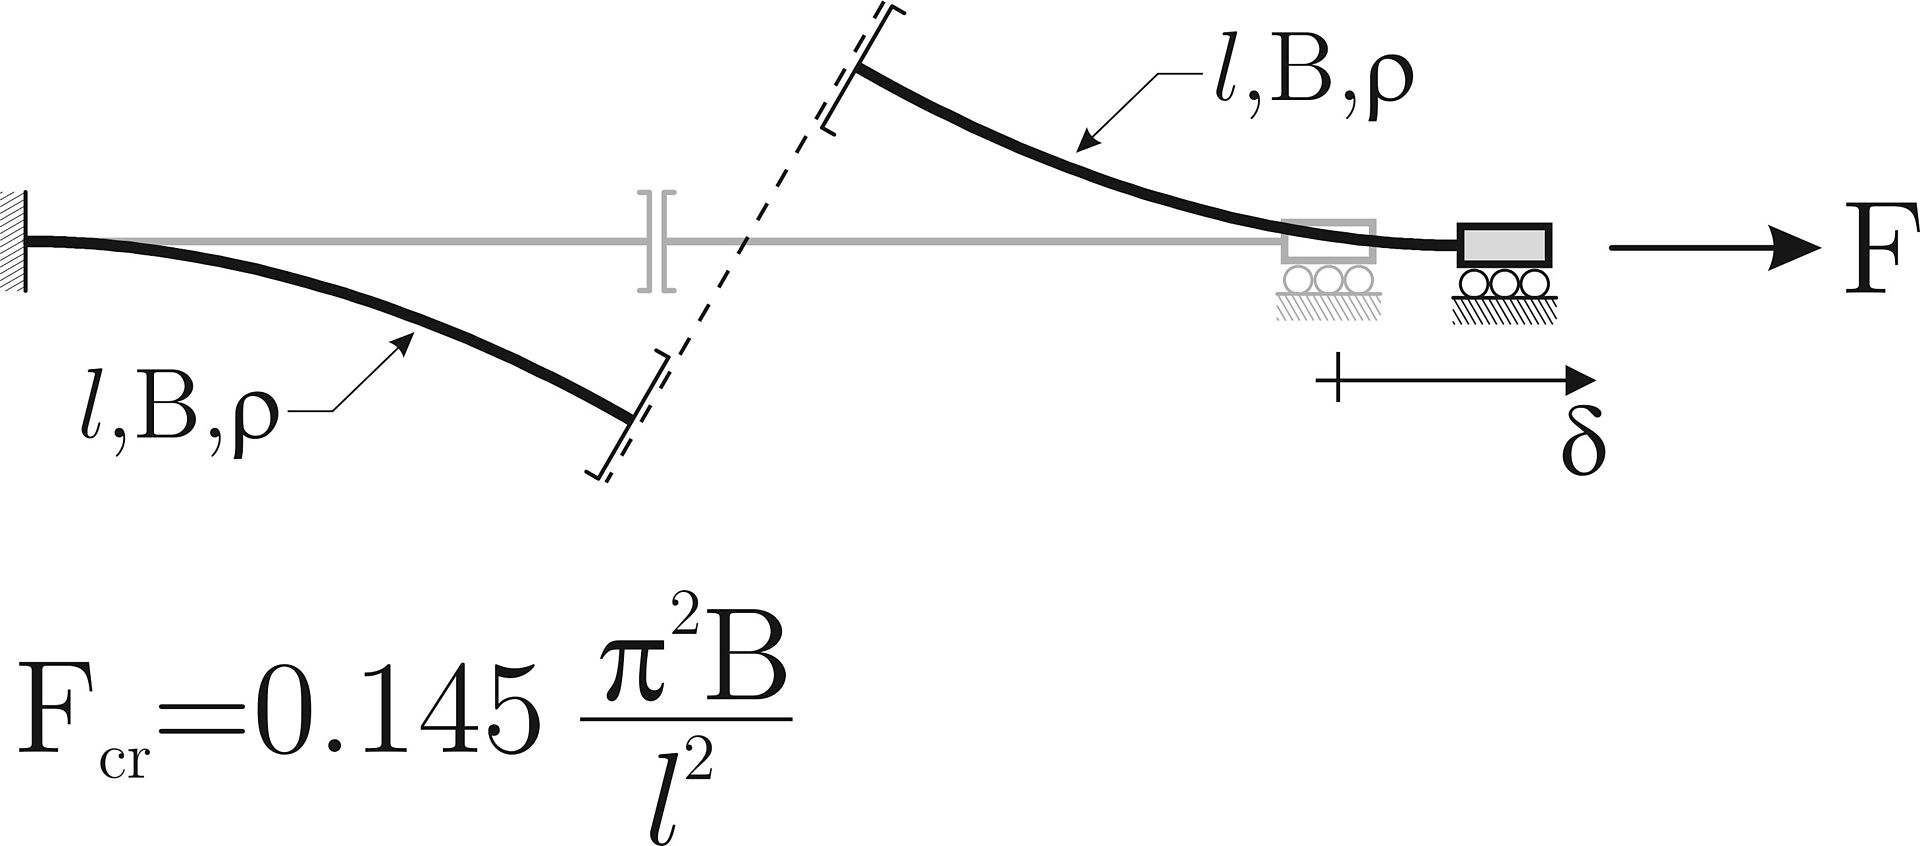 1920px-Continuous_model_tensile_buckling.jpg